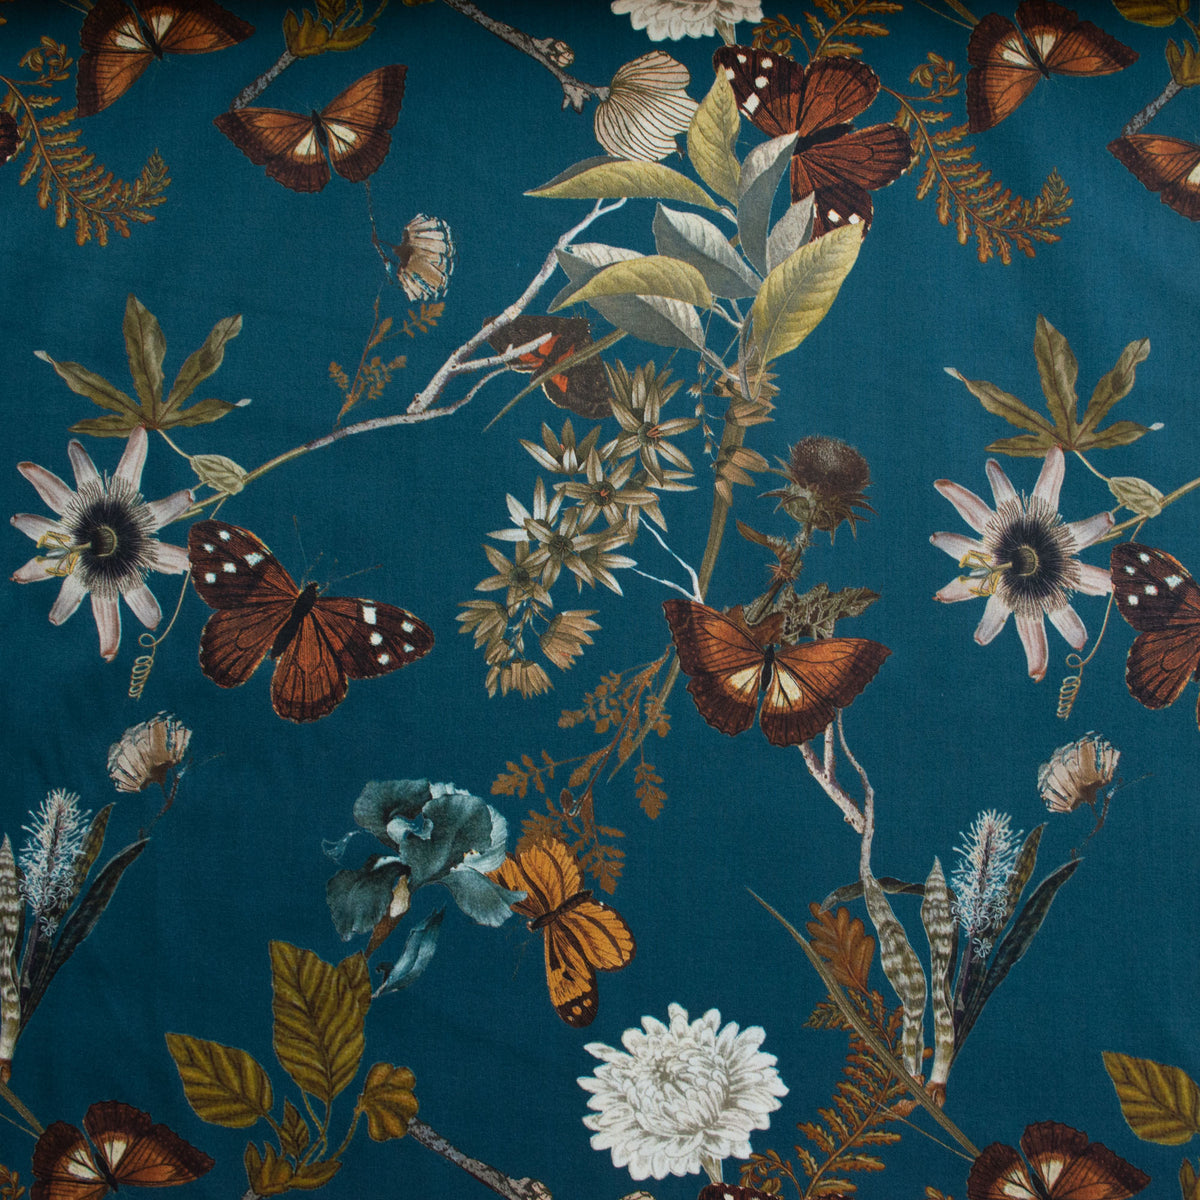 Lady McElroy - Cotton Lawn - Twilight Flutter - MaaiDesign